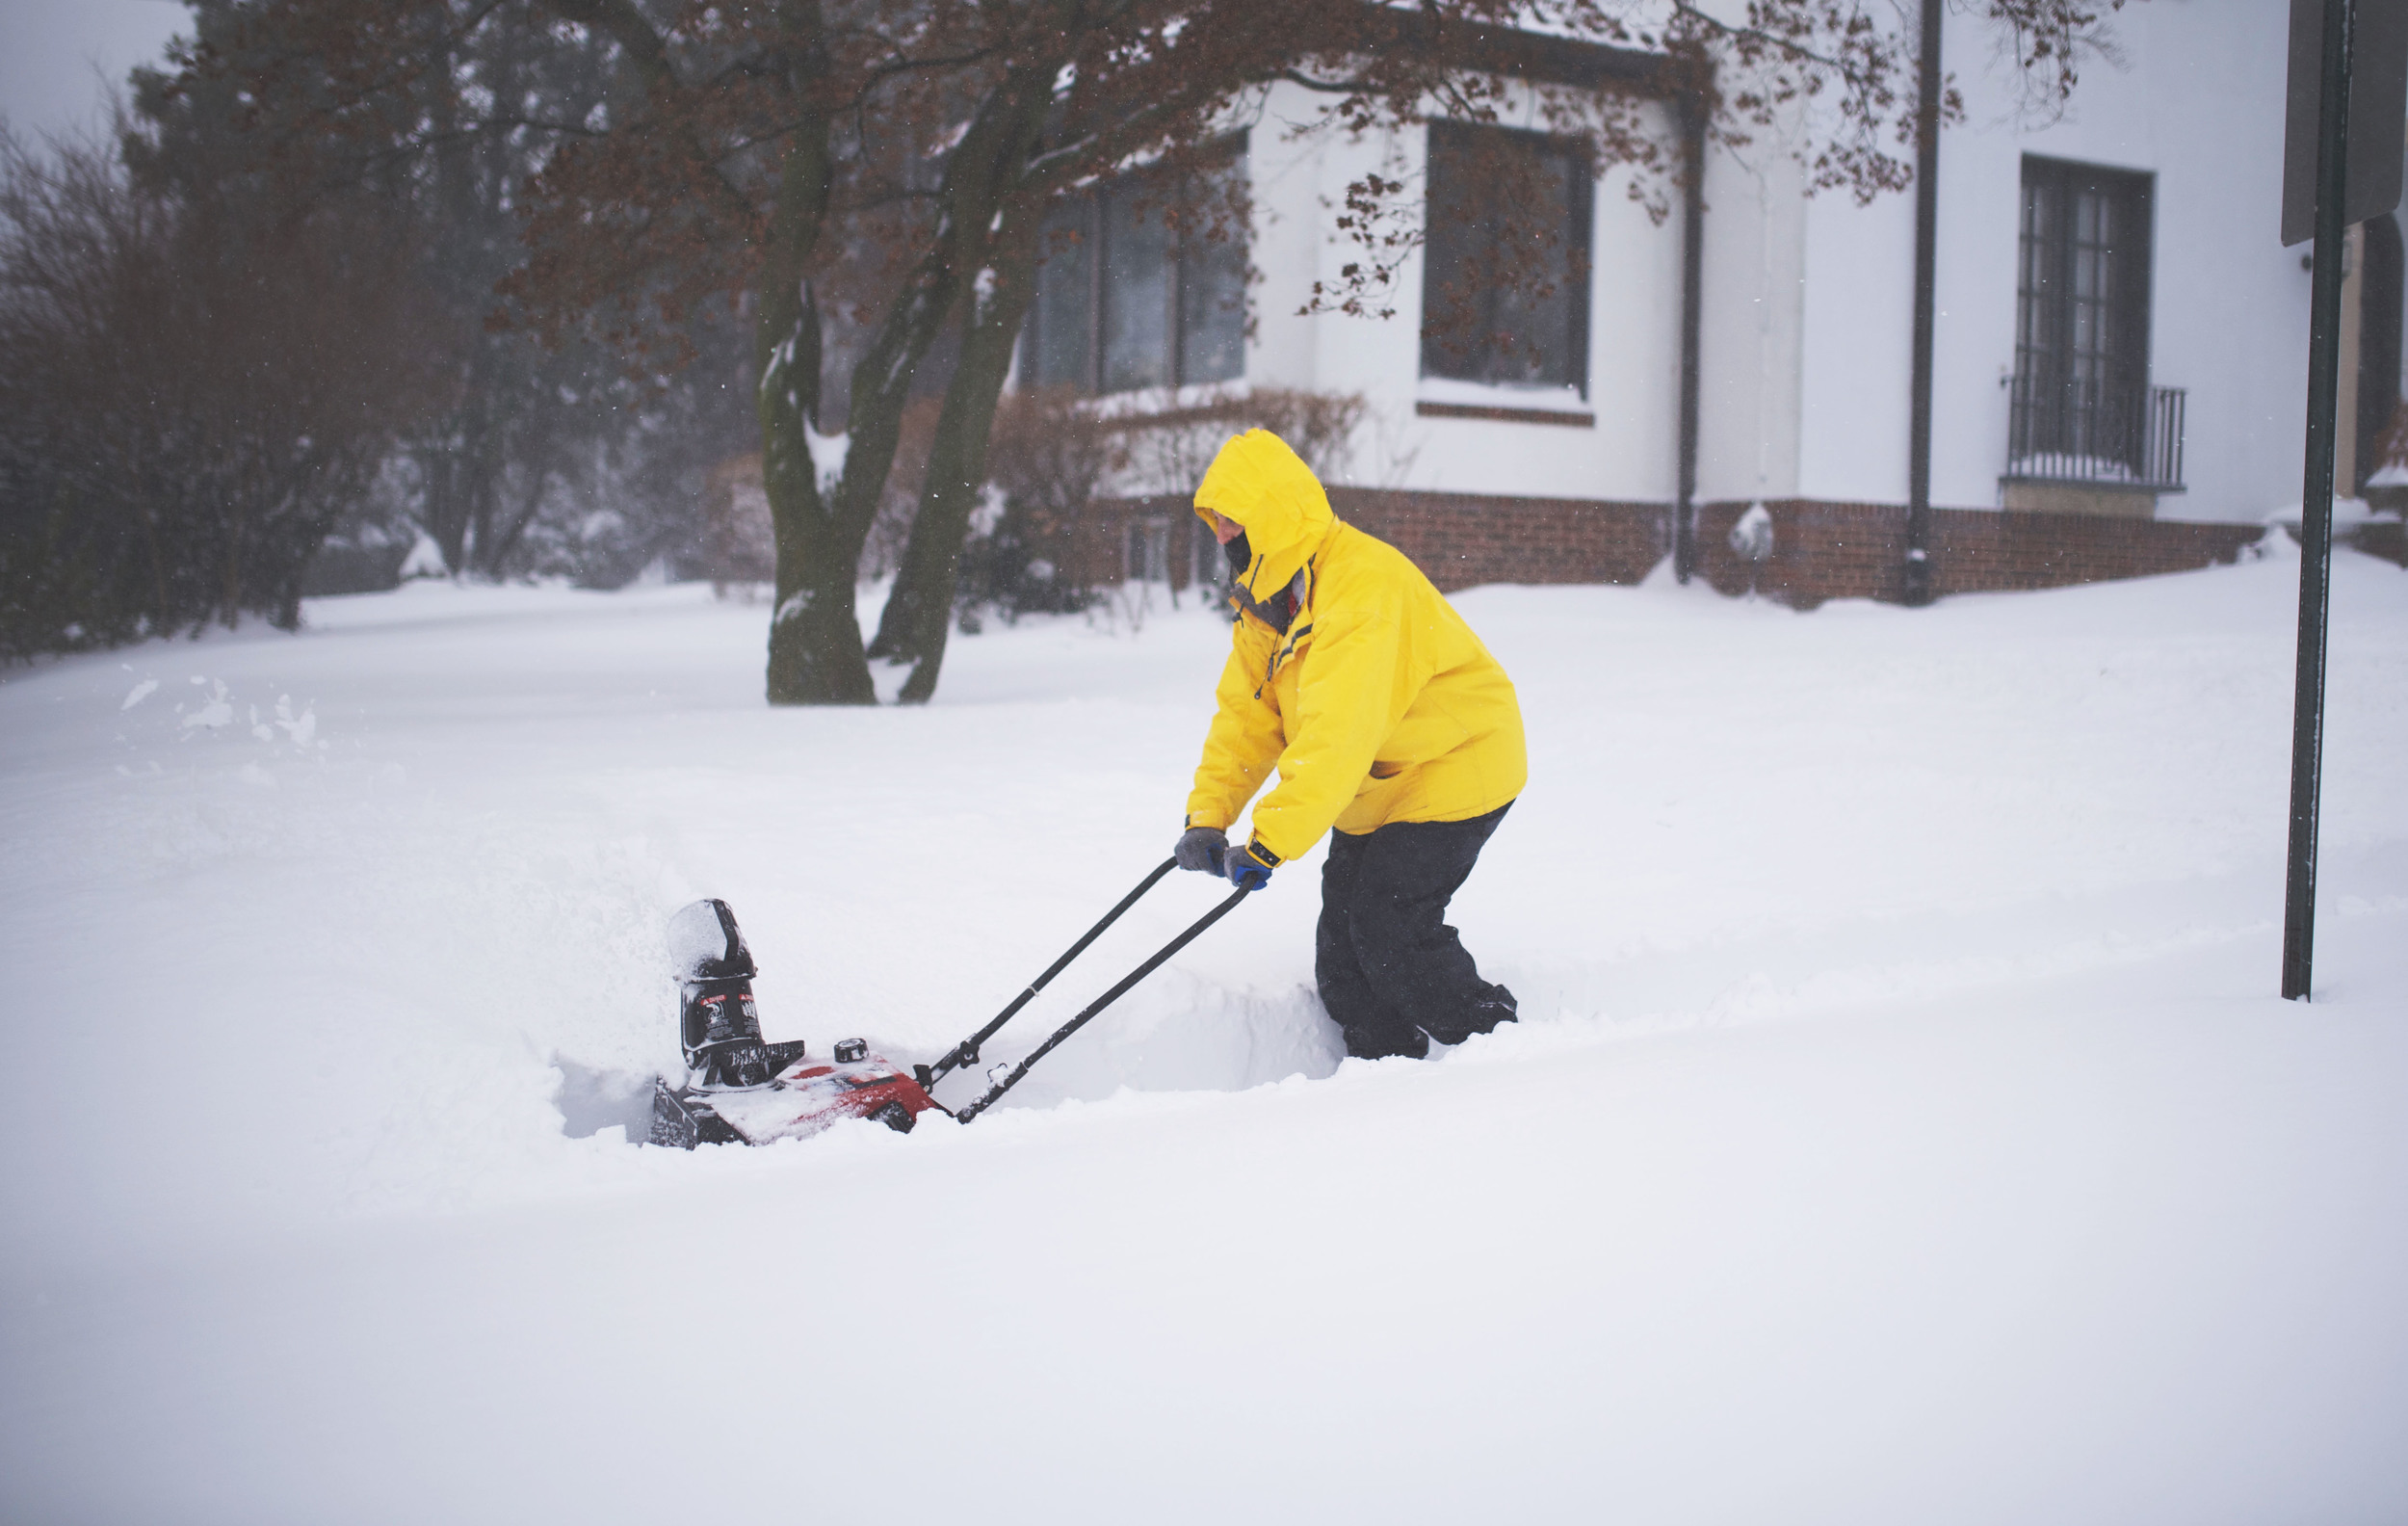 and of course the people who finally got use their snow blowers. They knew it would come in handy sooner or later.